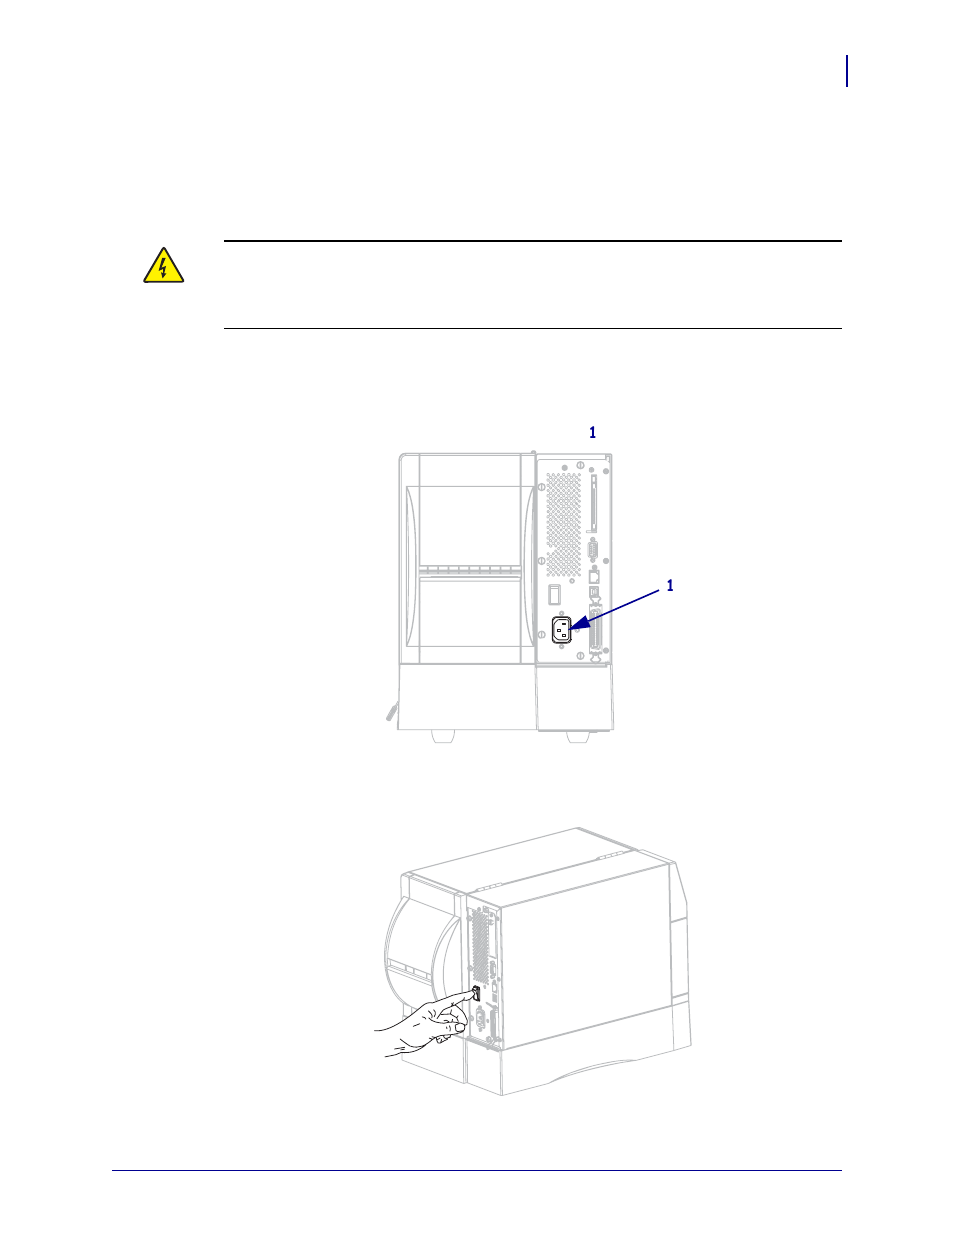 Connect The Printer To A Power Source Zebra Zm400 User Manual Iec 320 Switch Wiring Diagram Page 31 146